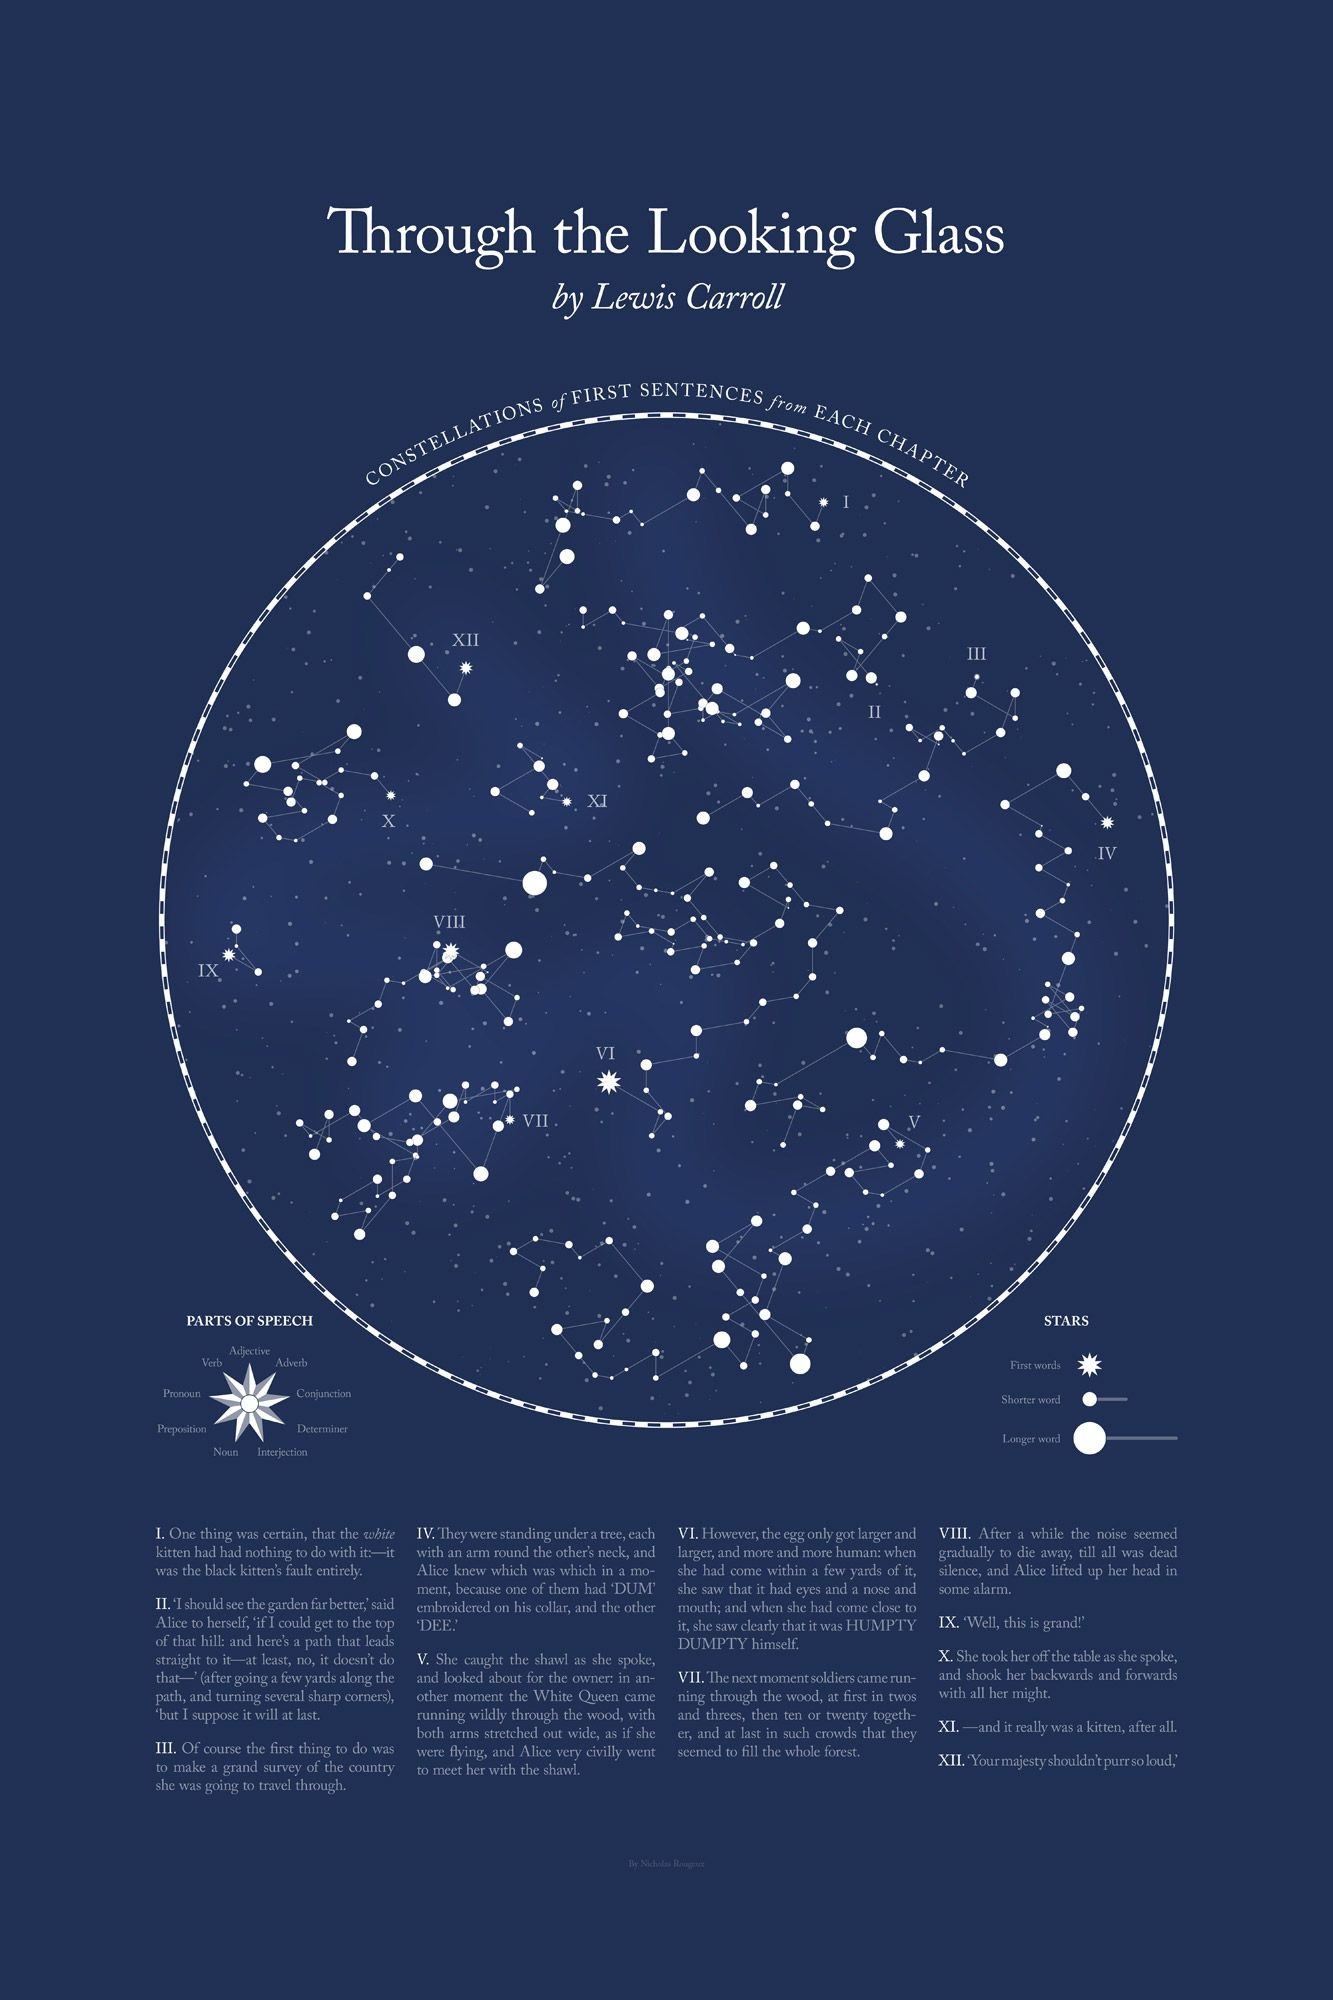 Constellations of first sentences from each chapter of short stories constellations of first sentences from each chapter of short stories ccuart Images